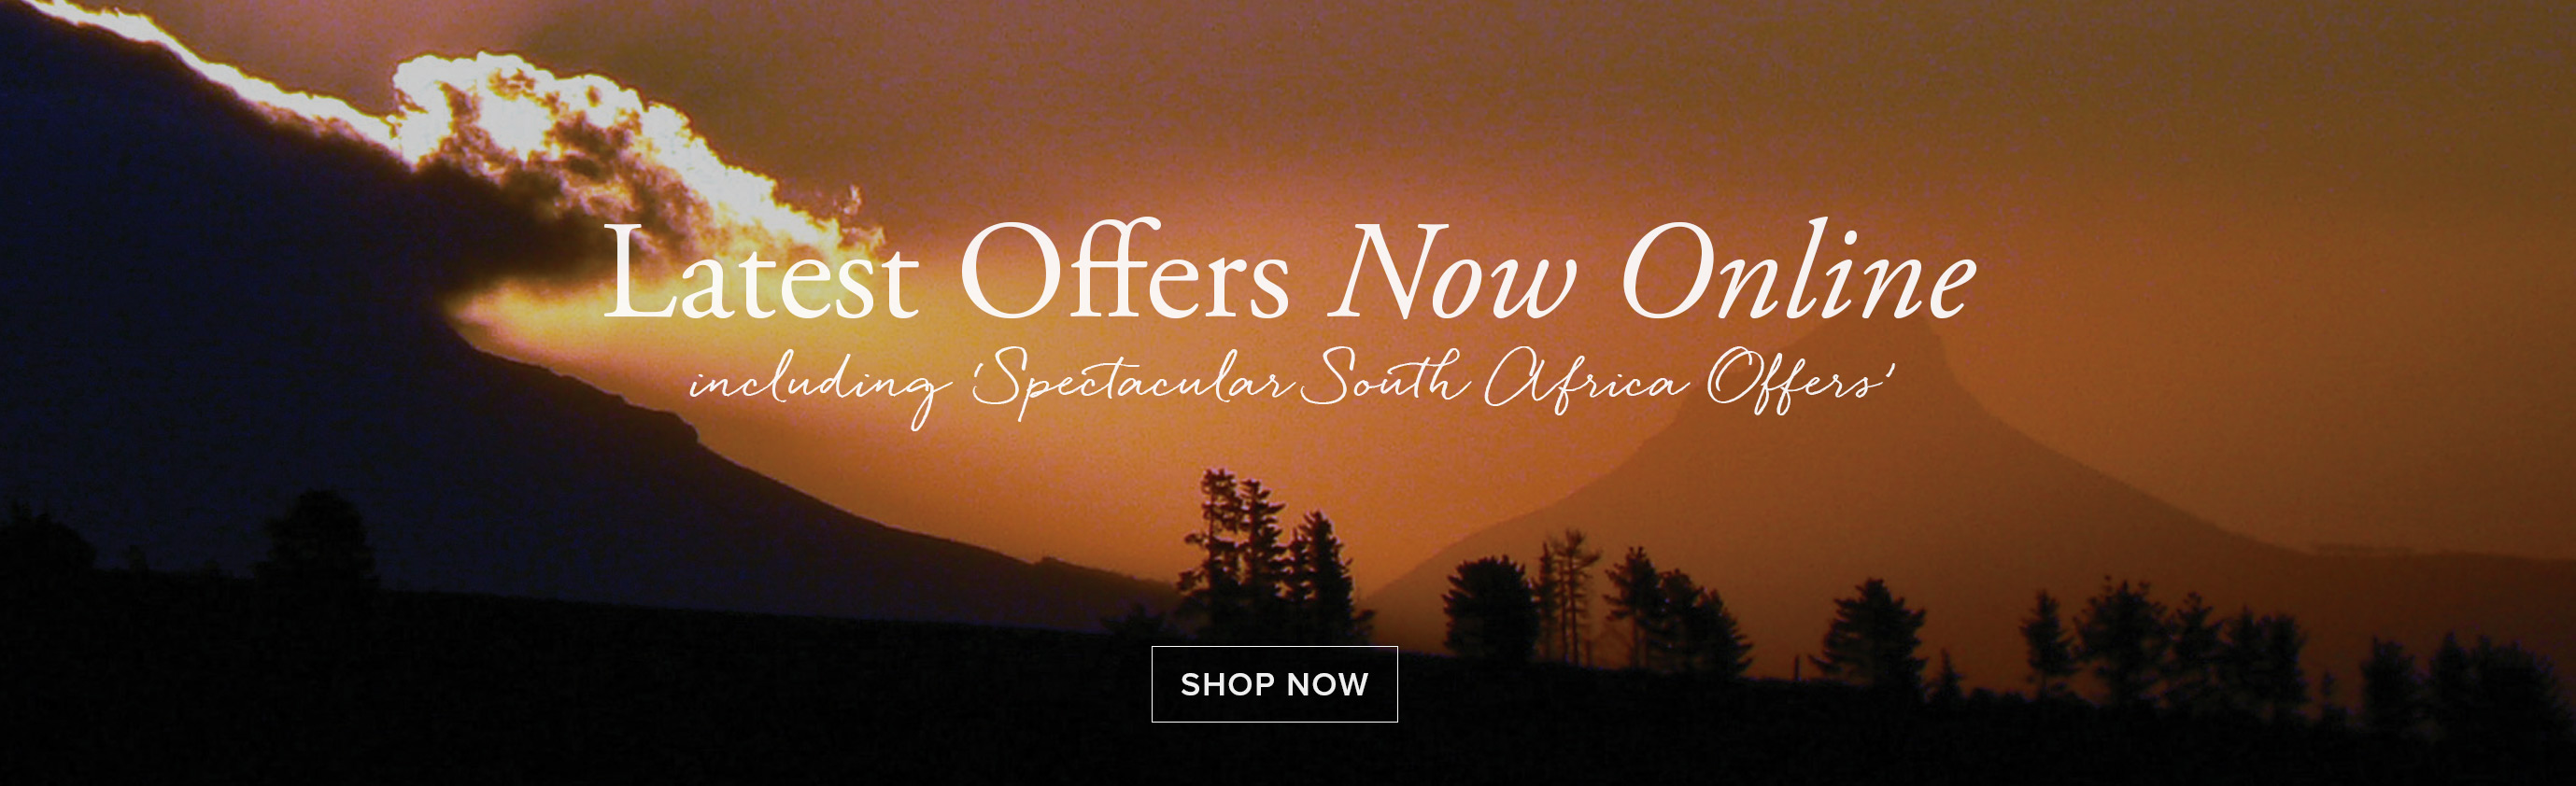 Latest Offers Including Spectacular South Africa Offers